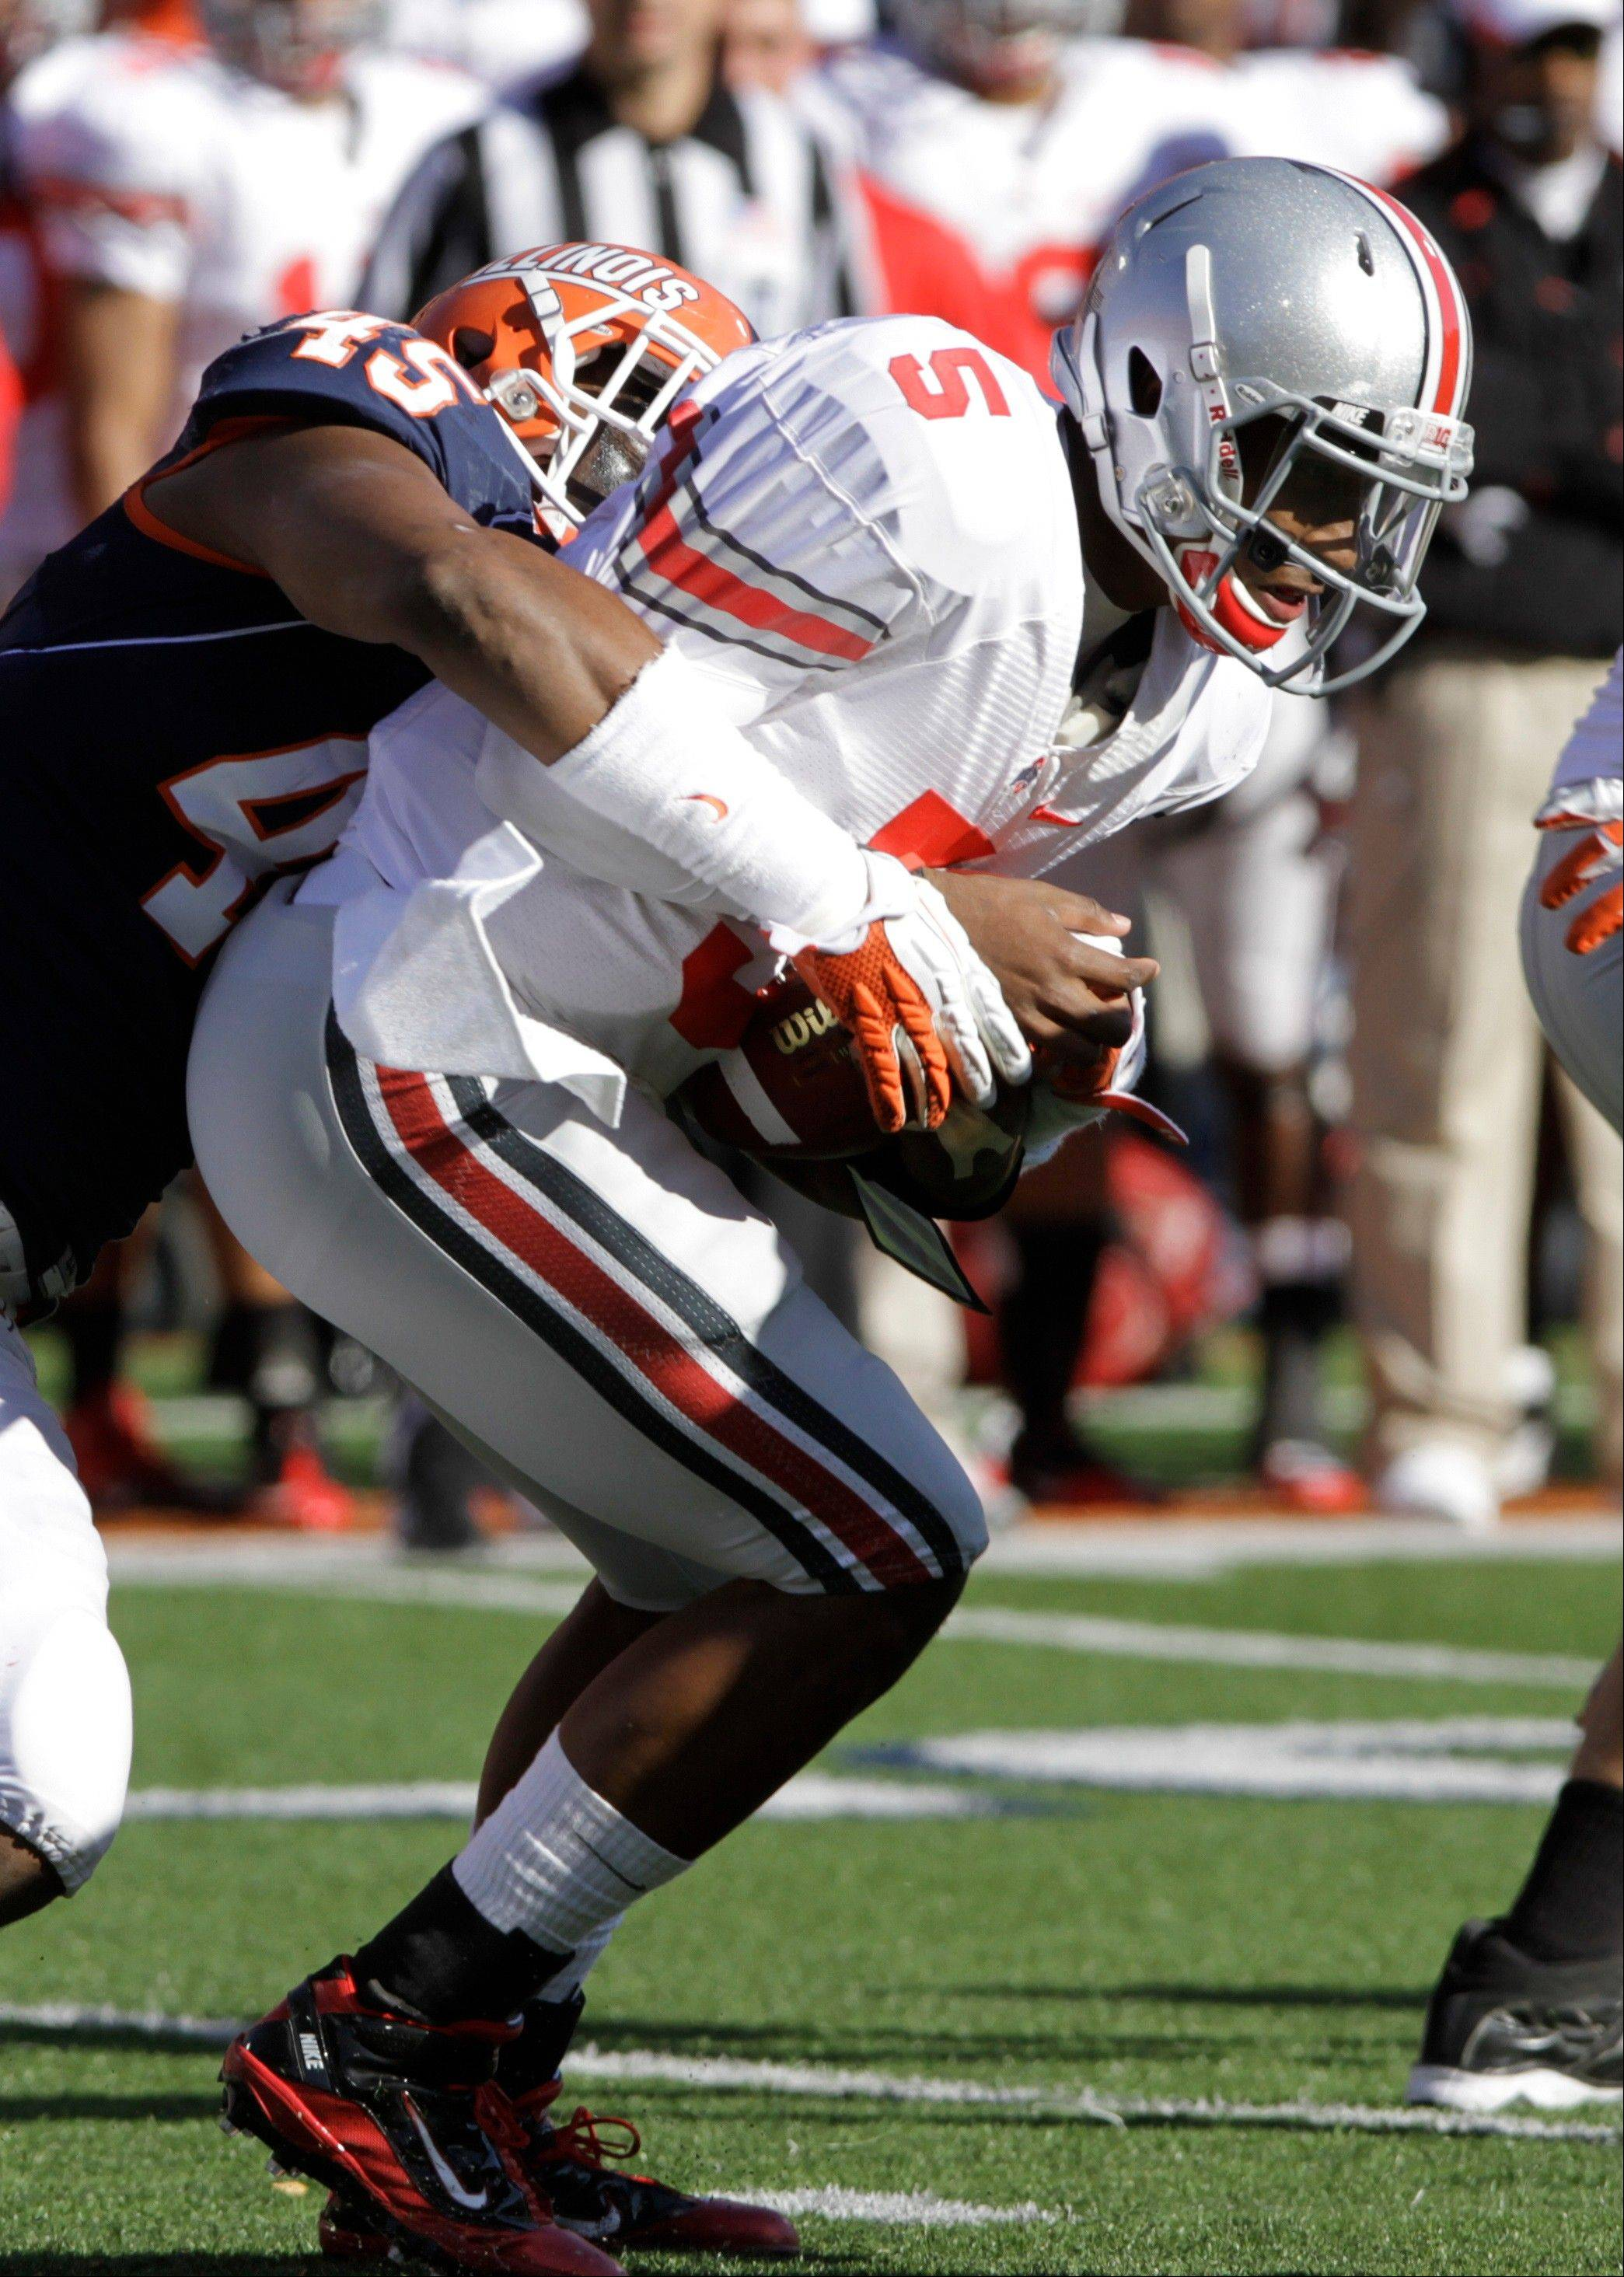 Illinois wil try to slow down Ohio State quarterback Braxton Miller (5) when the two teams meet Saturday in Champaign. The third-ranked Buckeyes are heavy favorites in the game.